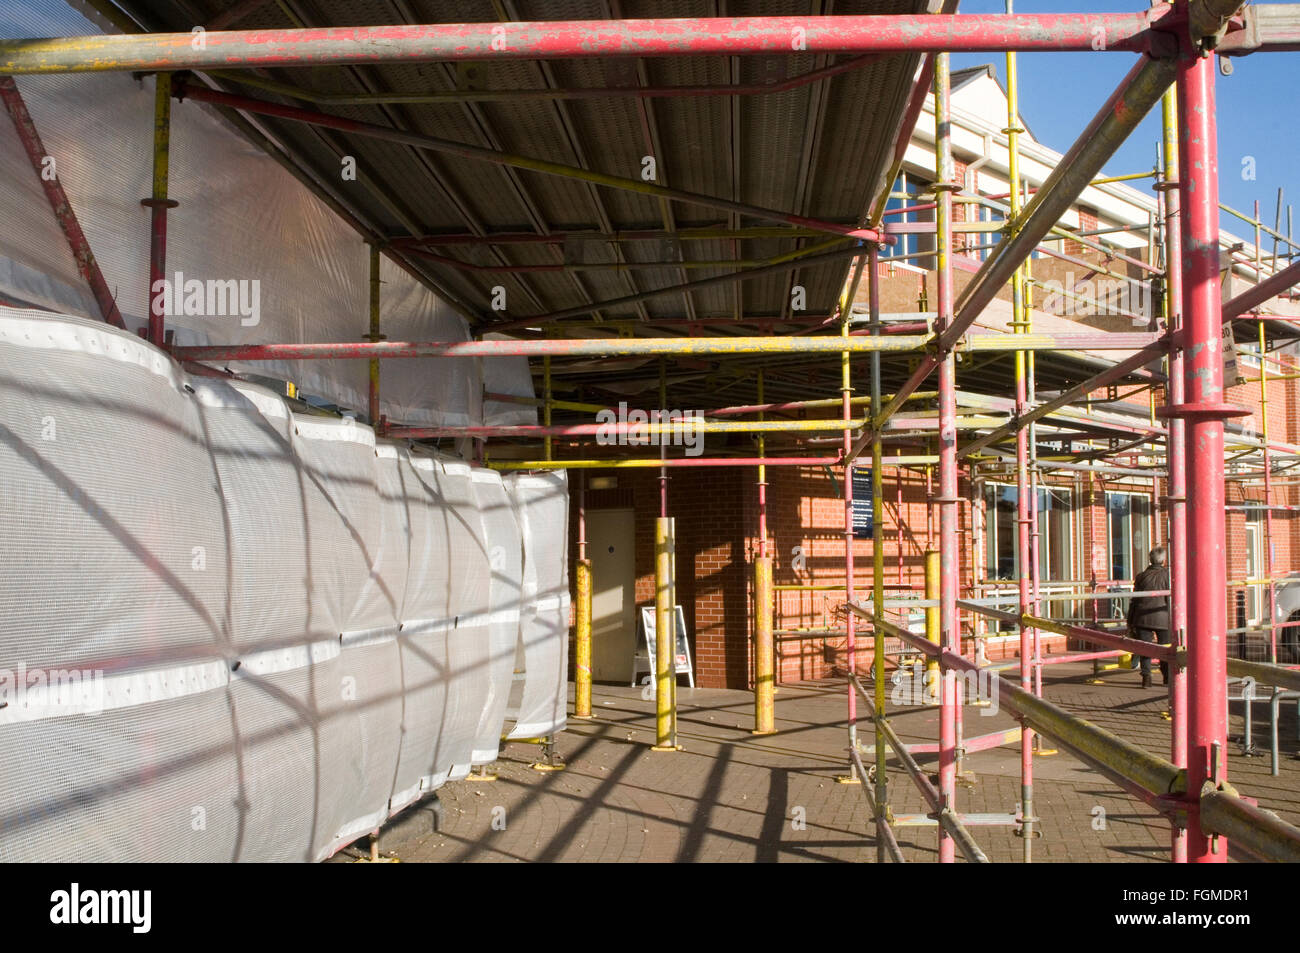 Scaffolding scaffold steel tube building work construction